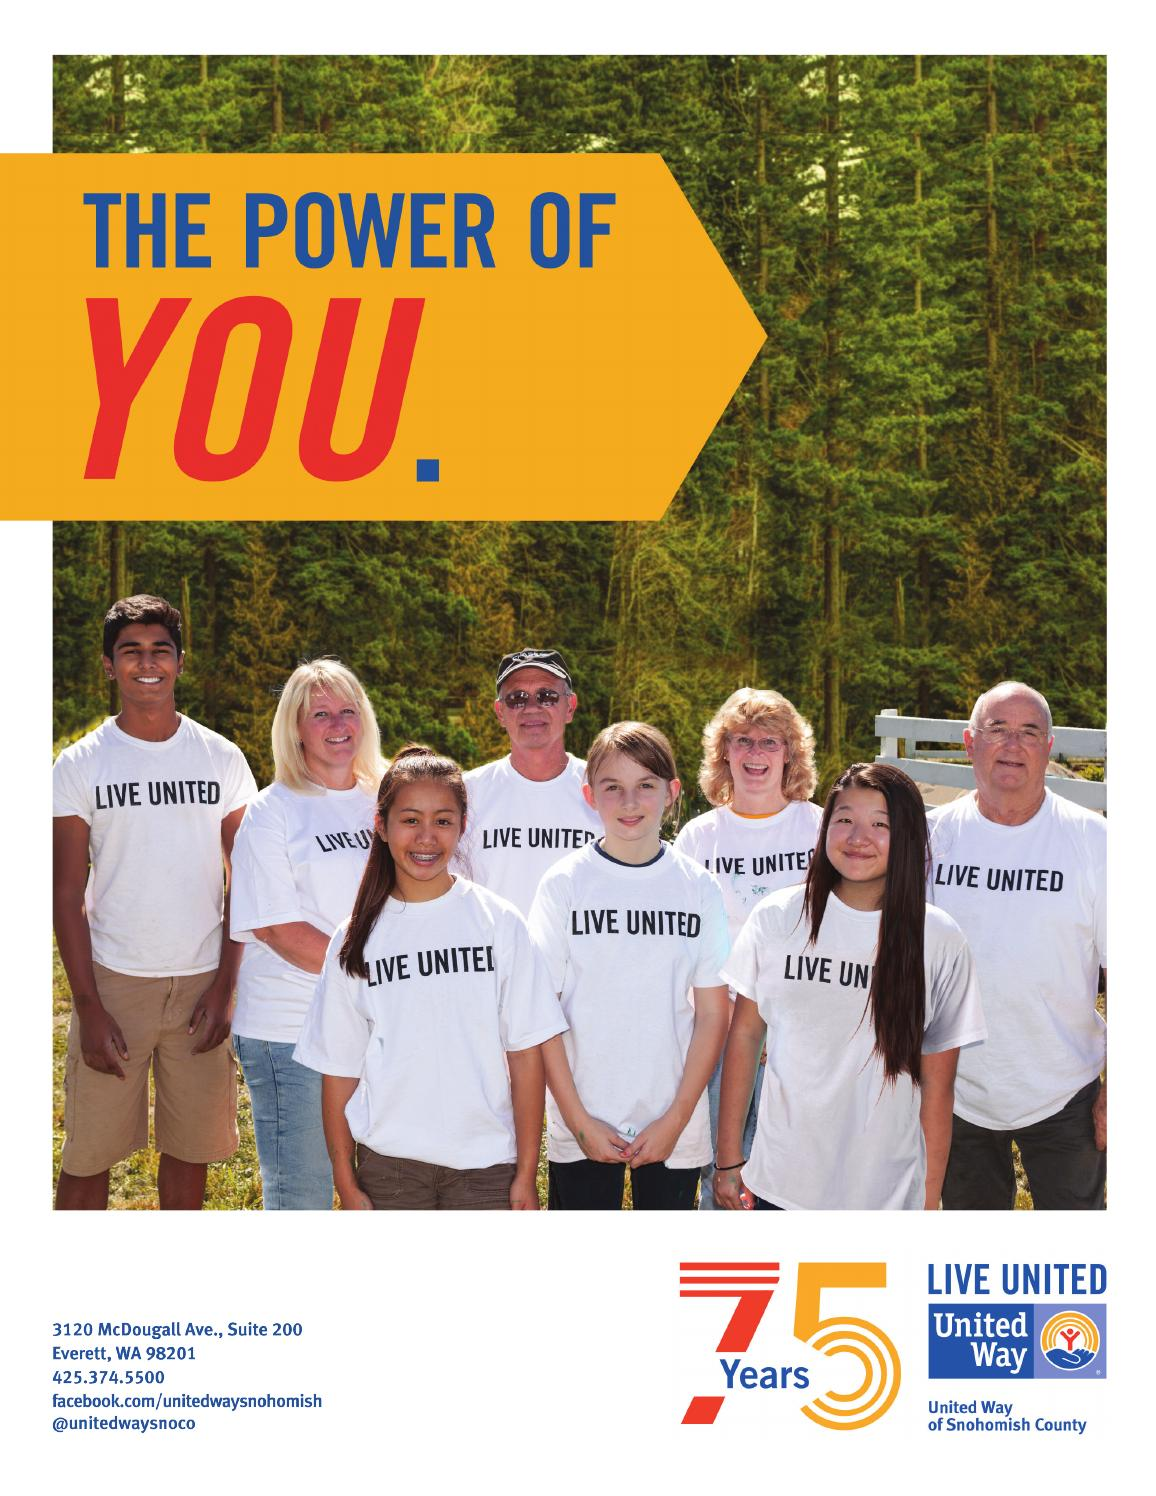 Ina Mae Spivey Stunning live united leaders publicationunited way of snohomish county